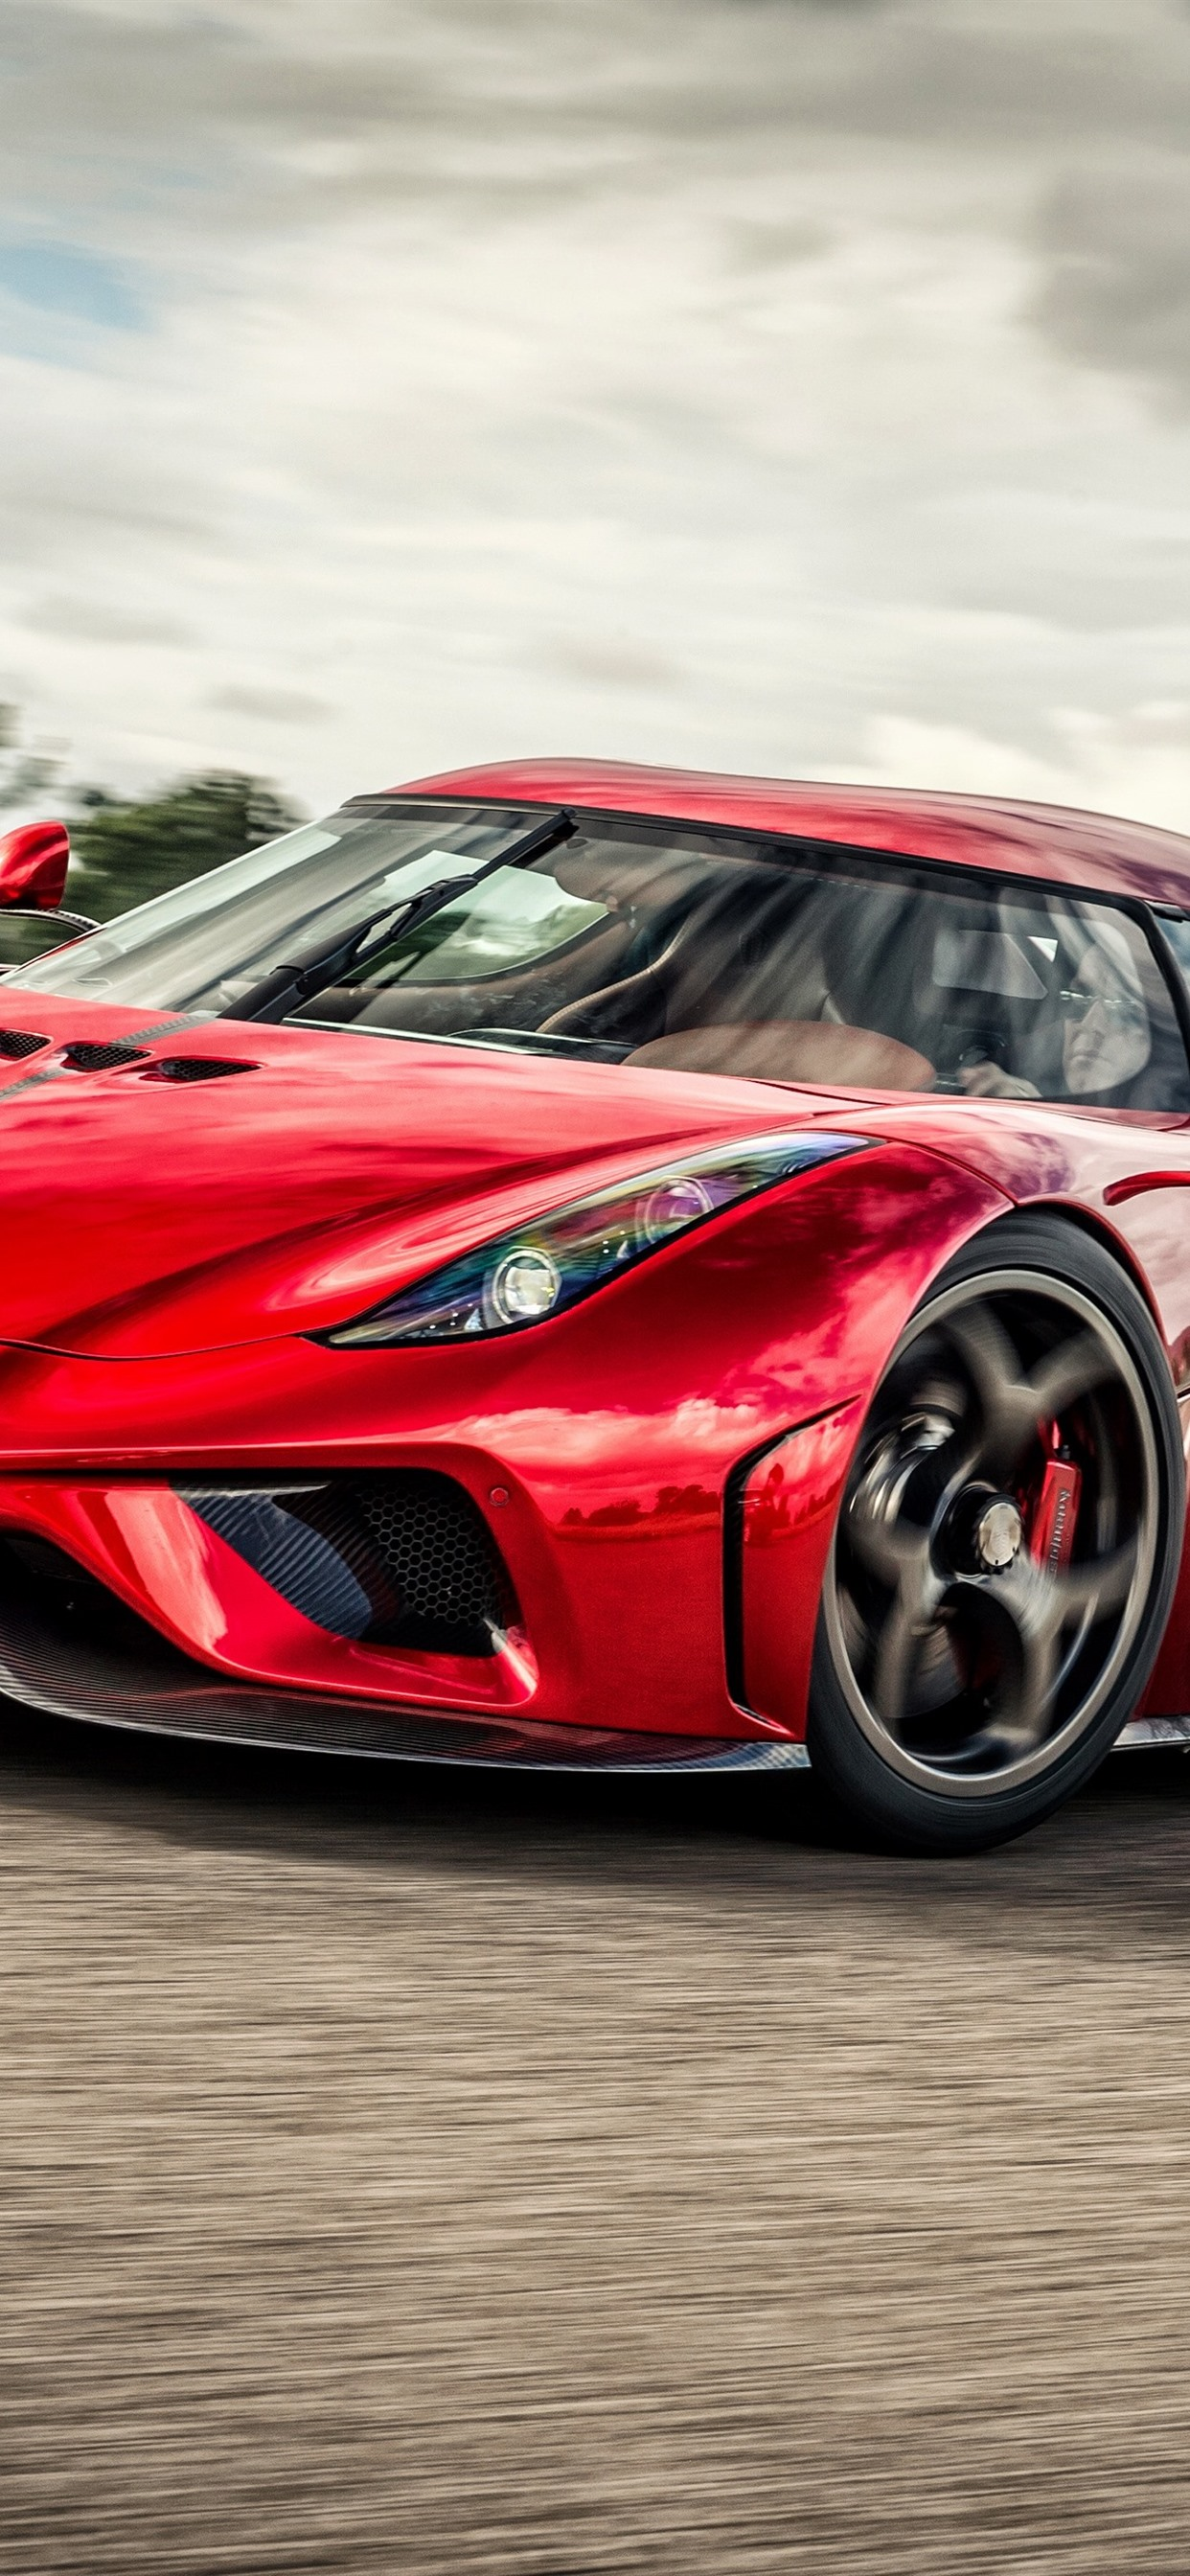 Koenigsegg red supercar front view 1242x2688 iPhone XS Max ...